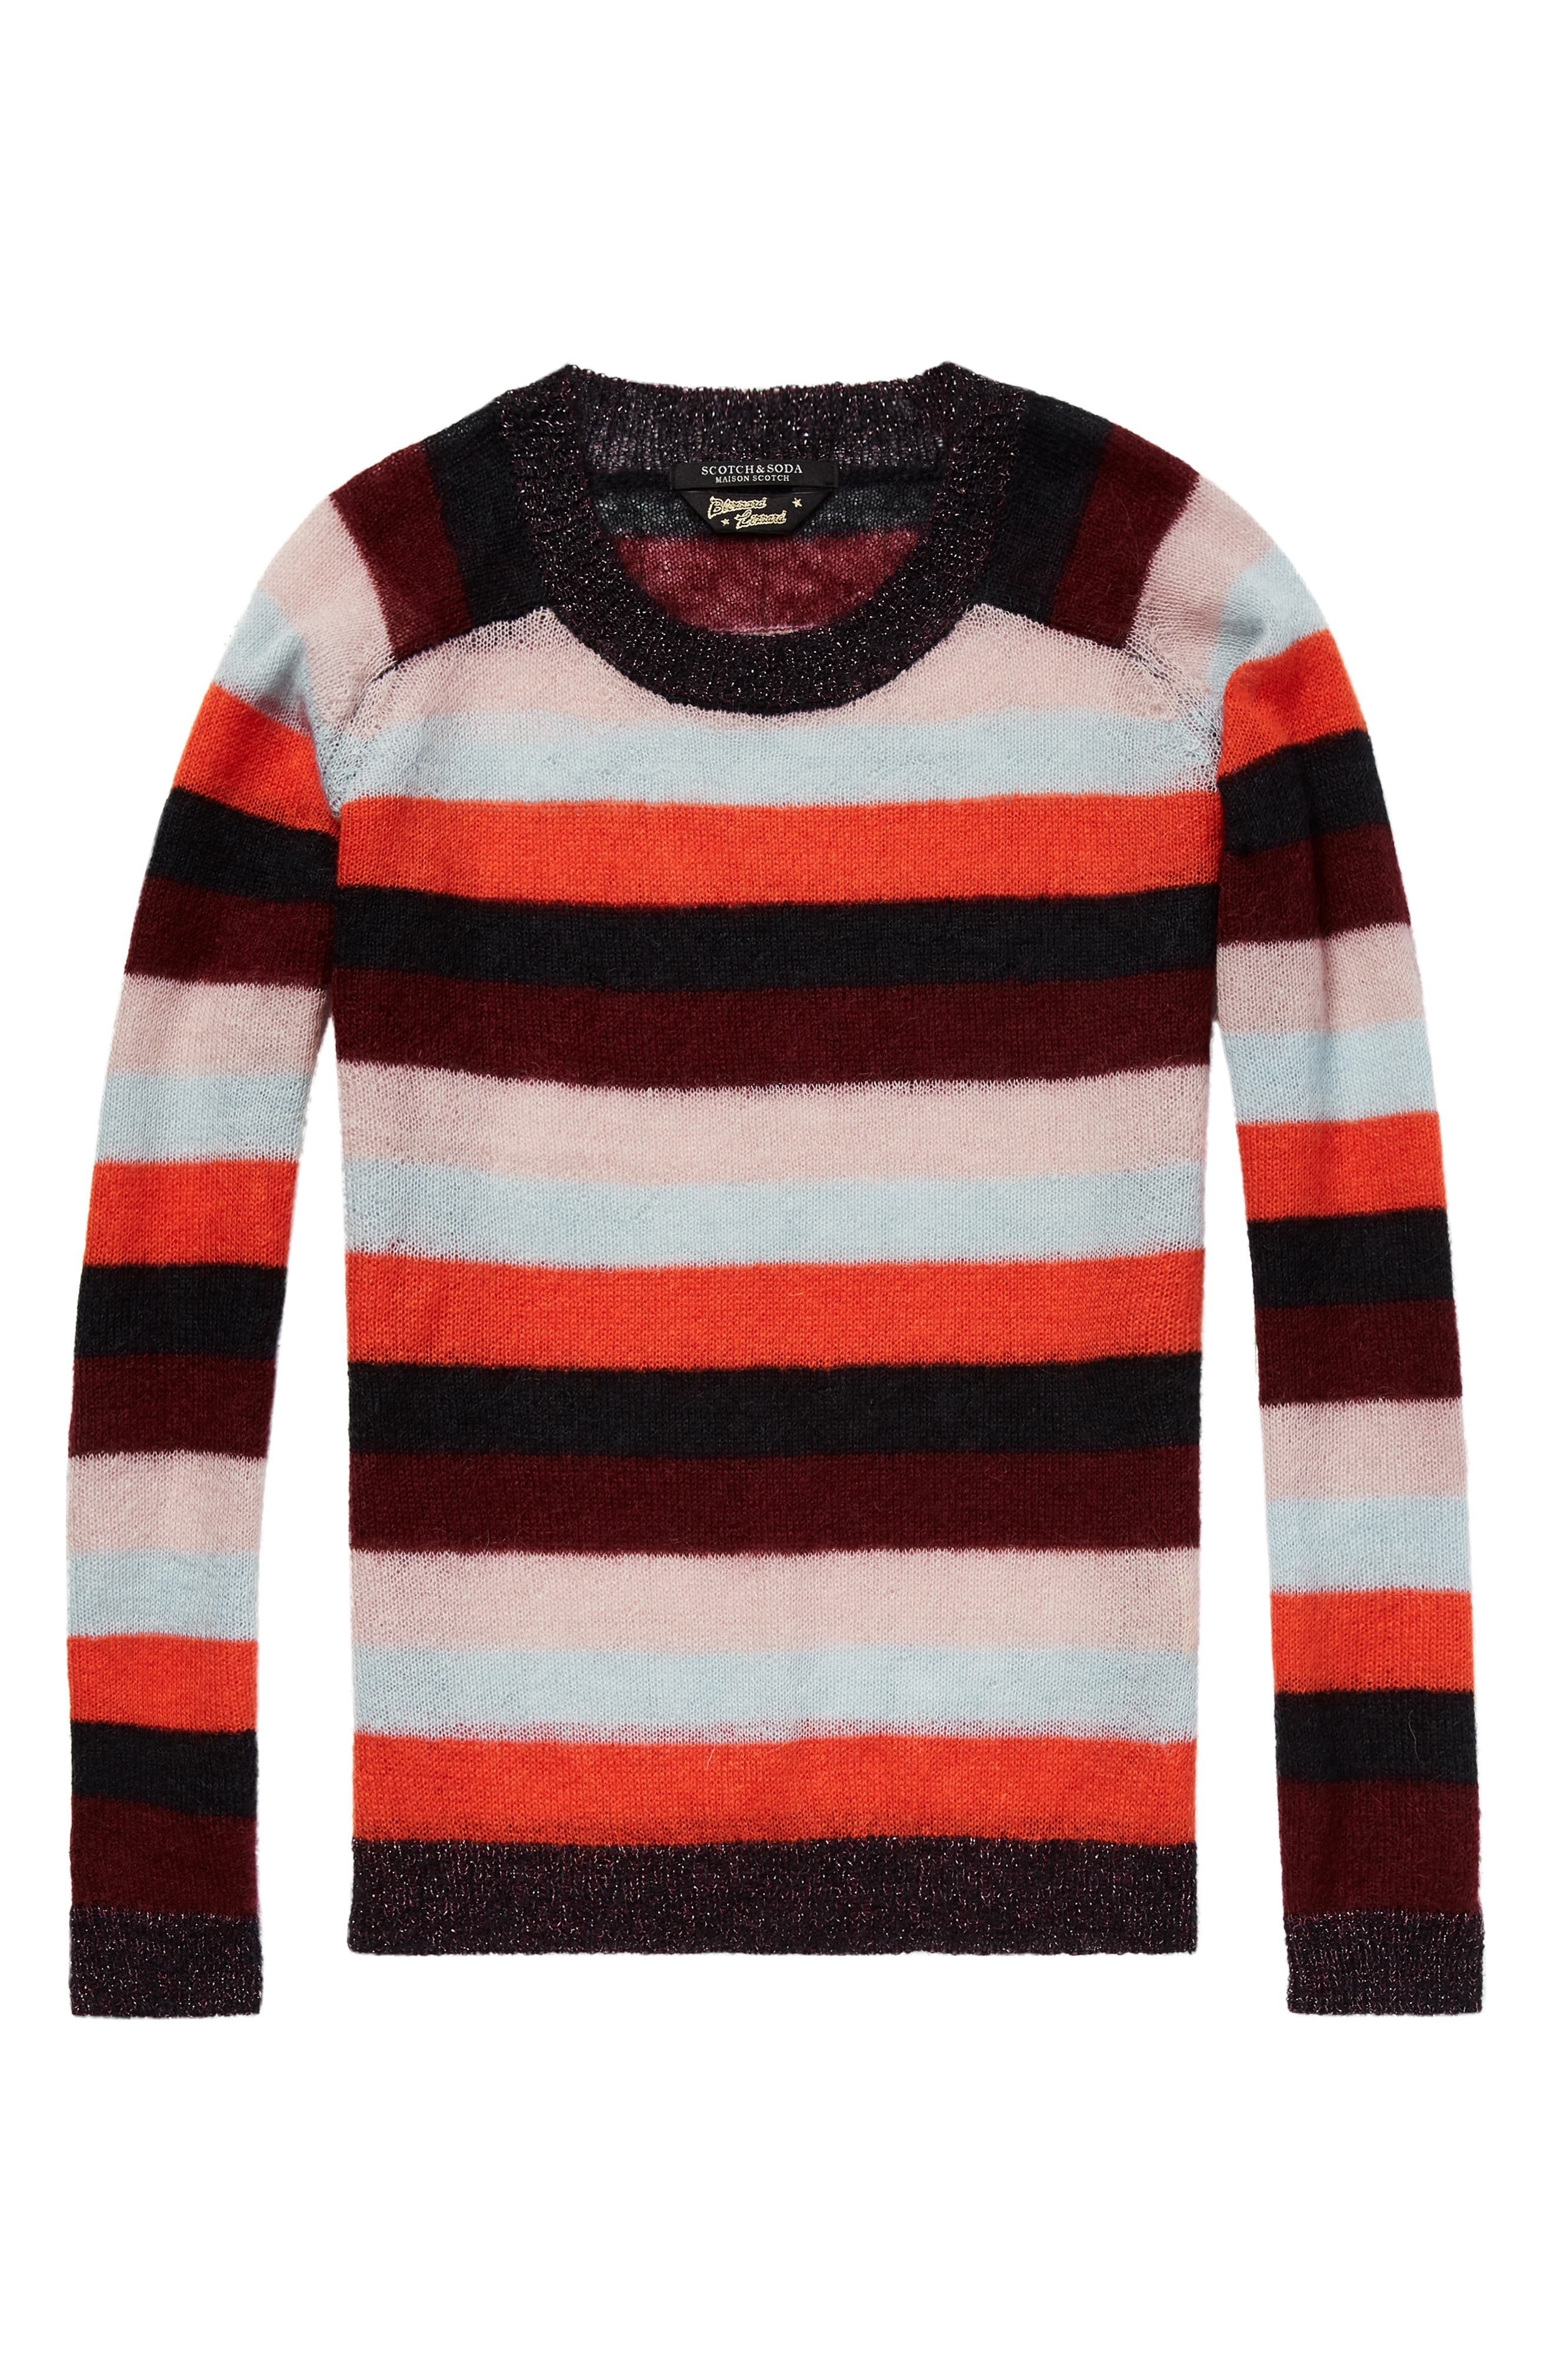 Stripe Sweater,                             Alternate thumbnail 4, color,                             ORANGE BURGUNDY LT BLUE STRIPE